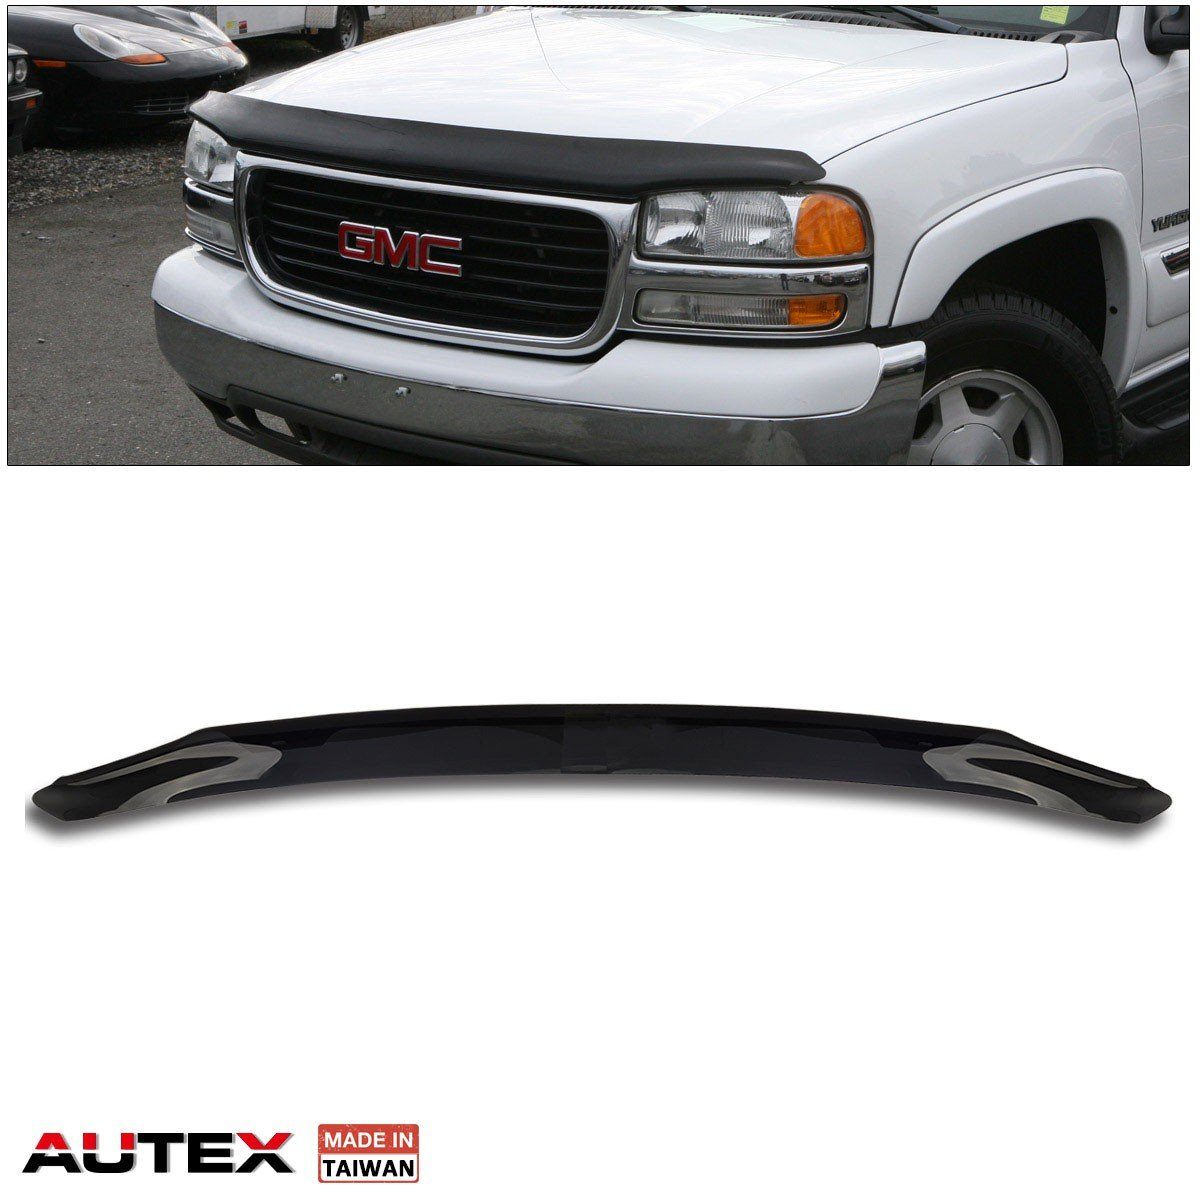 AUTEX Hood Shields Bug Deflector Compatible with Nissan Frontier 2005 2006 2007 2008 2009 2010 2011 2012 2013 2014 2015 2016 2017 Compatible with Pathfinder 2005 2006 2007 Bug Shields Deflector